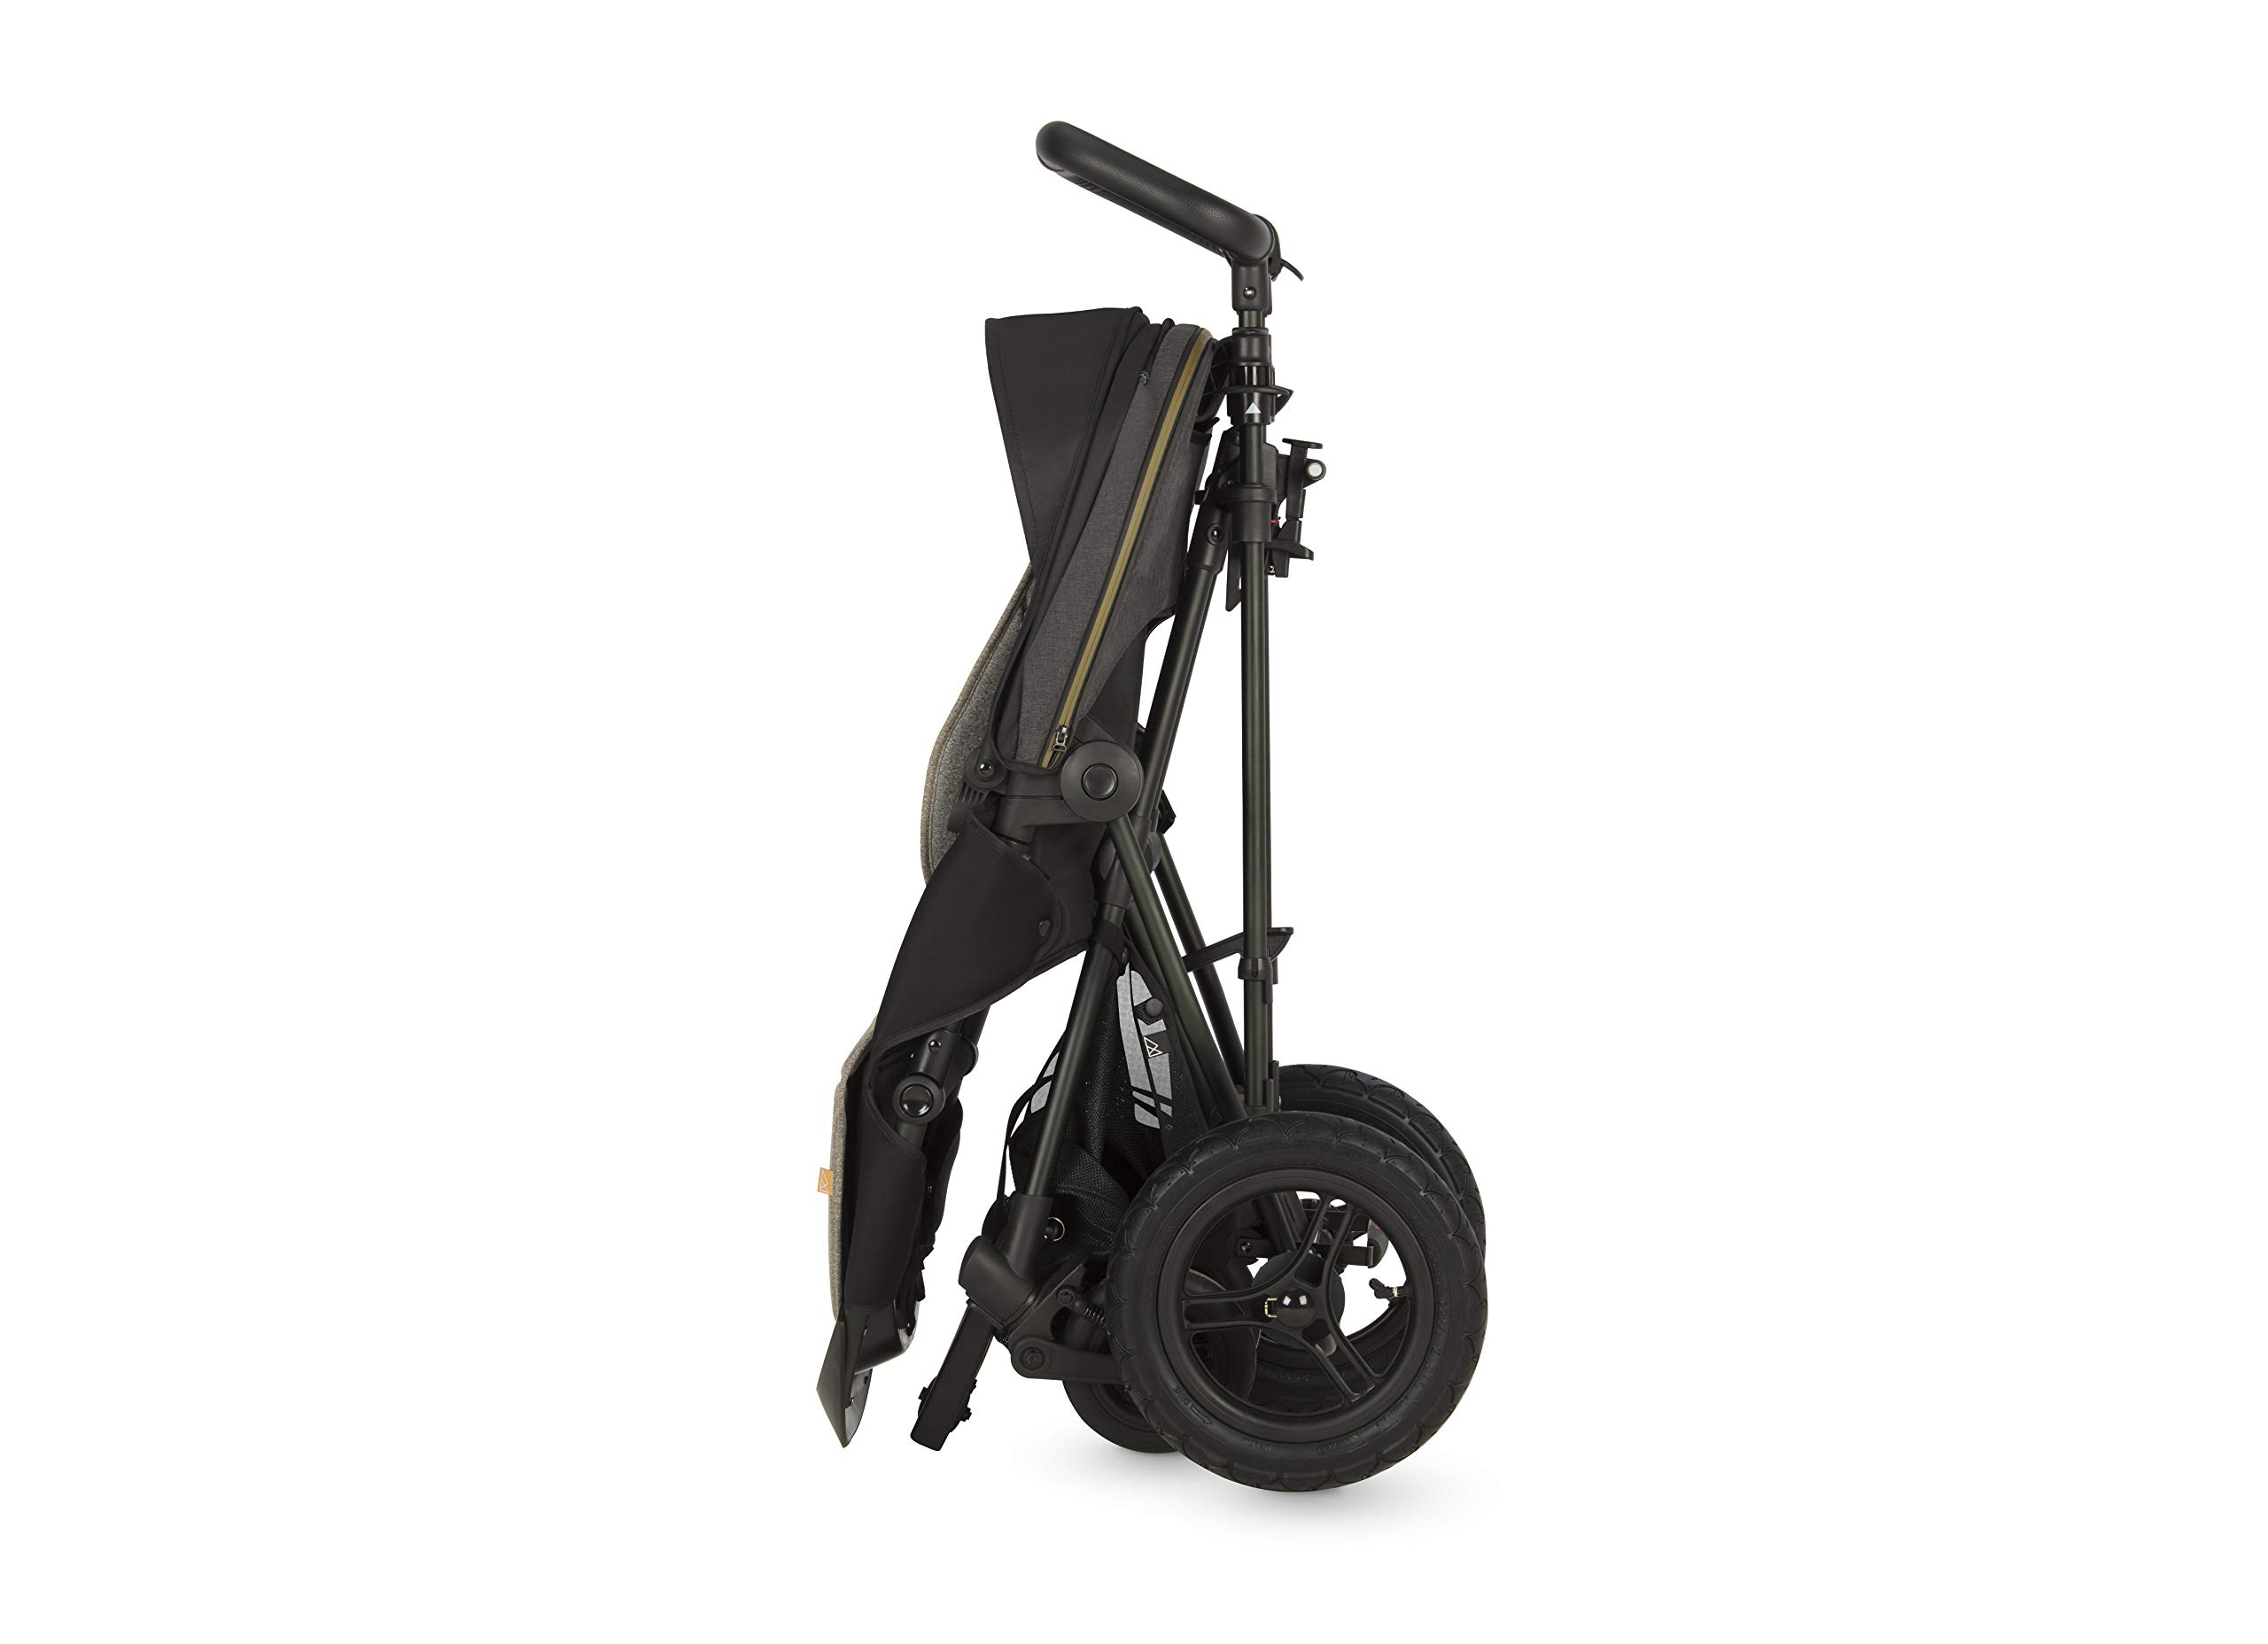 Micralite TwoFold Pushchair - Carbon. Suitable from 6 Months to 4 Years. Add Carrycot to Convert to Travel System Micralite QUICK FOLD - The TwoFold folds into one piece, with one movement. Once folded it free stands for ease of storage at home or out and about. To transport when not in use simply drag it along behind you. ALL-TERRAIN WHEELS - Large air filled back tyres, high mud guards and great ground clearance mean you can still go anywhere even with two in tow. You don't have to worry about getting a puncture either as the pneumatic tyres are lined with Kevlar - the same fibre used in bullet proof vests! WEATHERPROOF FABRICS - Dressed with signature Micralite high quality weatherproof fabrics, the hood of the TwoFold turns water just aswell as it deflects the sun's harmful rays. We also include a storm cover for more extreme weather - so nothing can stop you and your little one from getting out there. 6